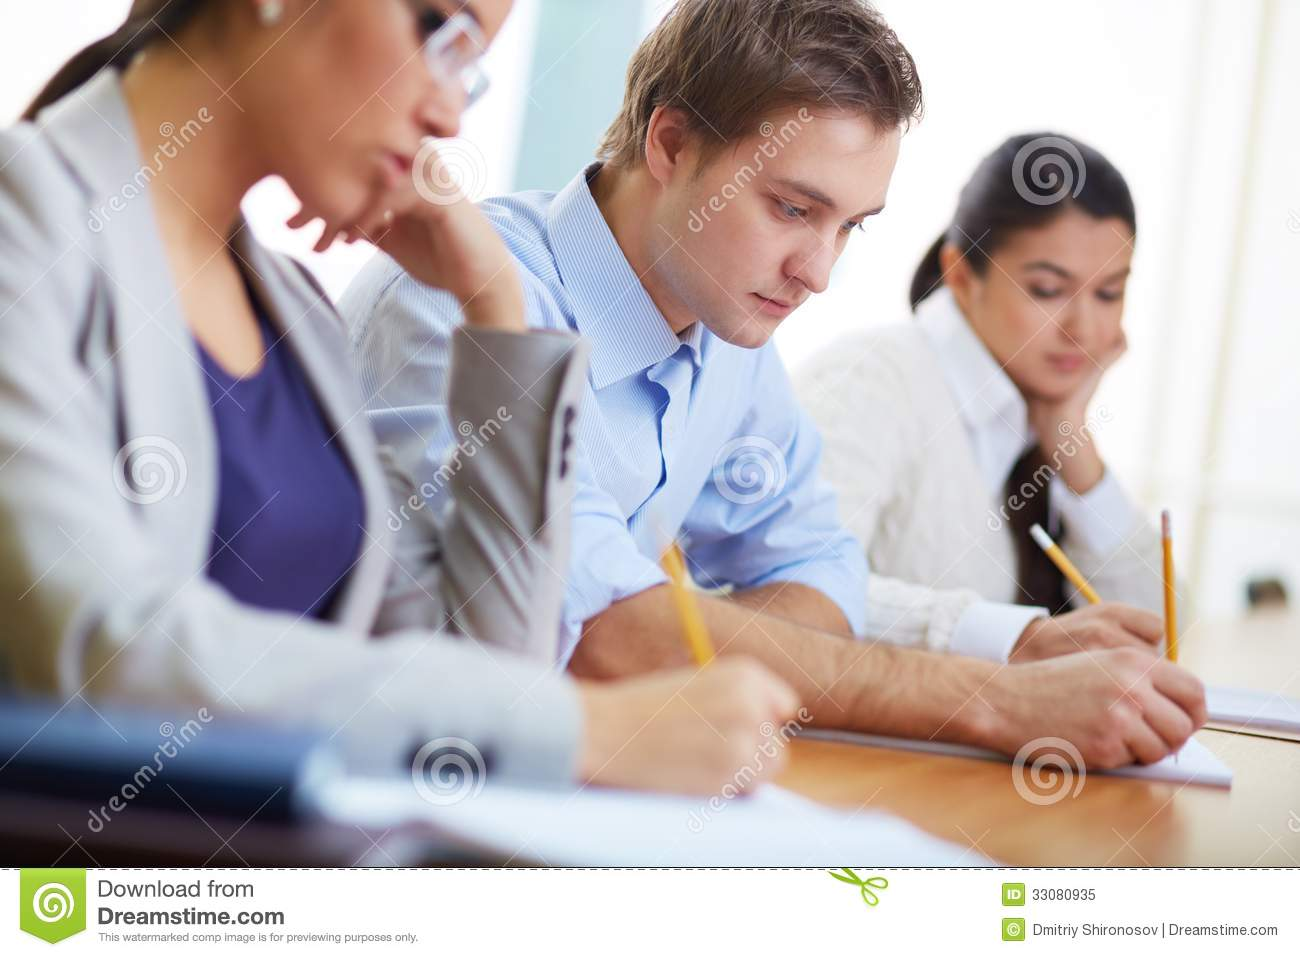 making essay test Essay topics: making of pencil submitted by knight on fri, 03/13/2015 - 06:37 overall, it can be seen that the process is divided into two parallel stages.